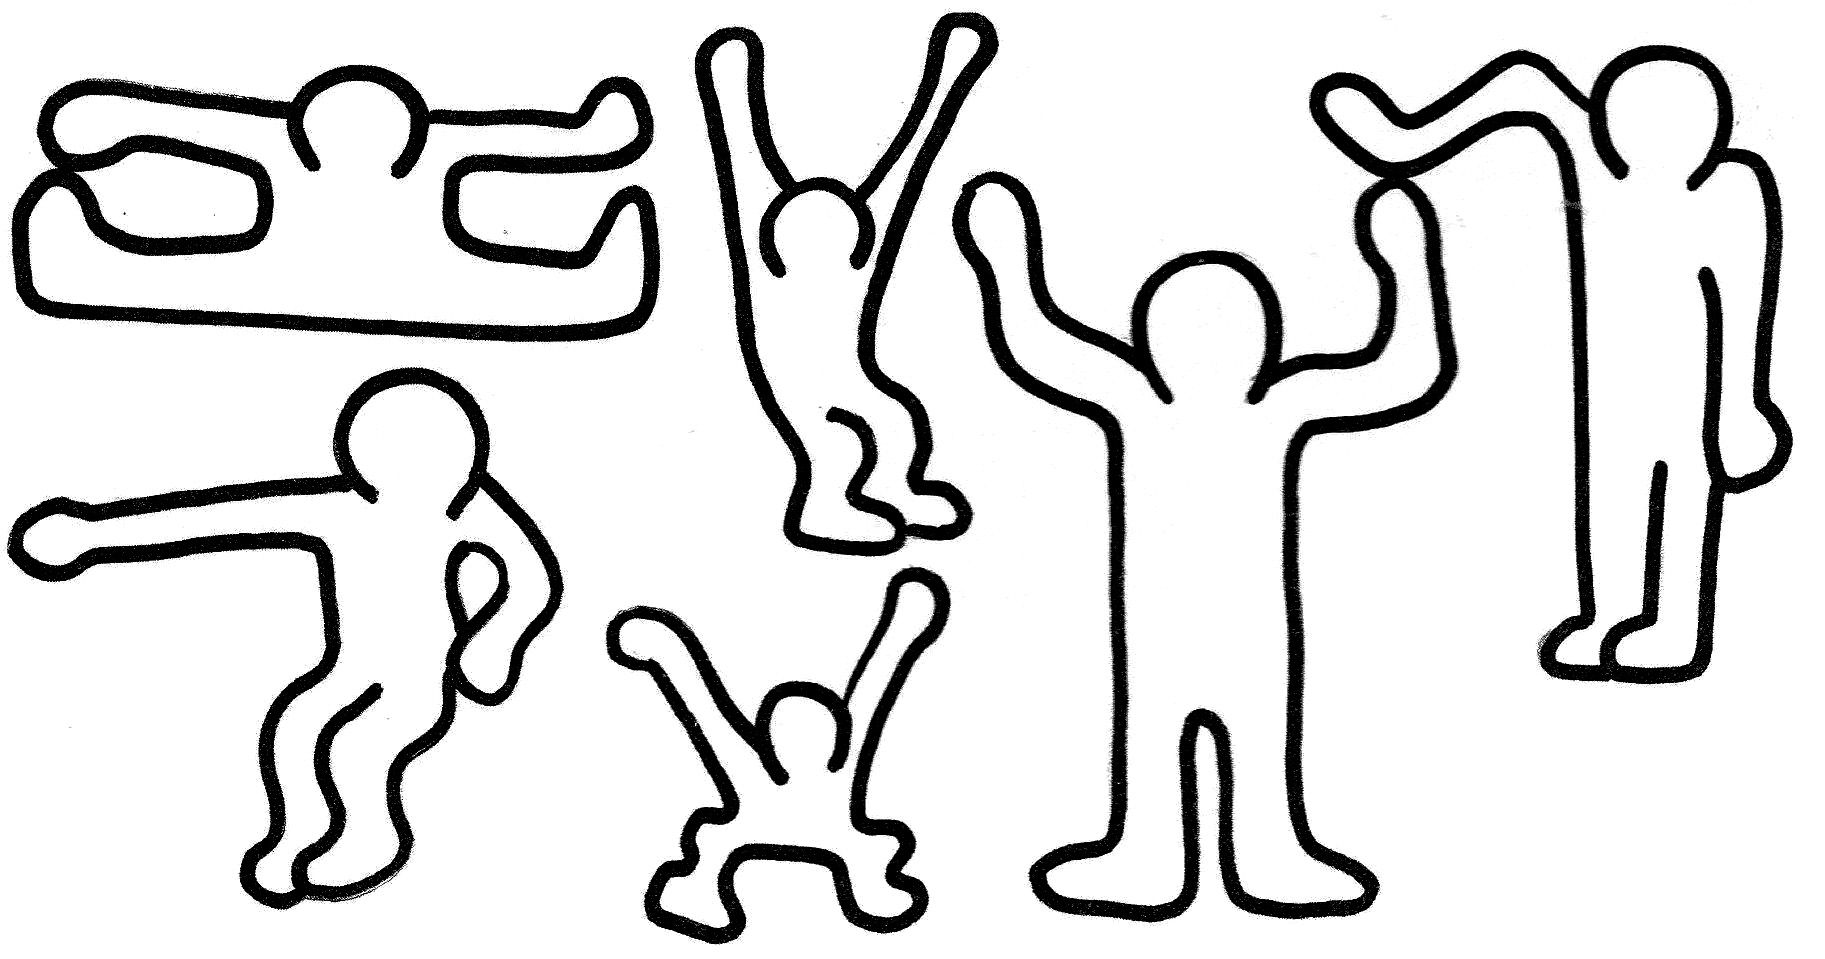 to print coloriage keith haring 3 click on the printer icon at the right of this page. Black Bedroom Furniture Sets. Home Design Ideas